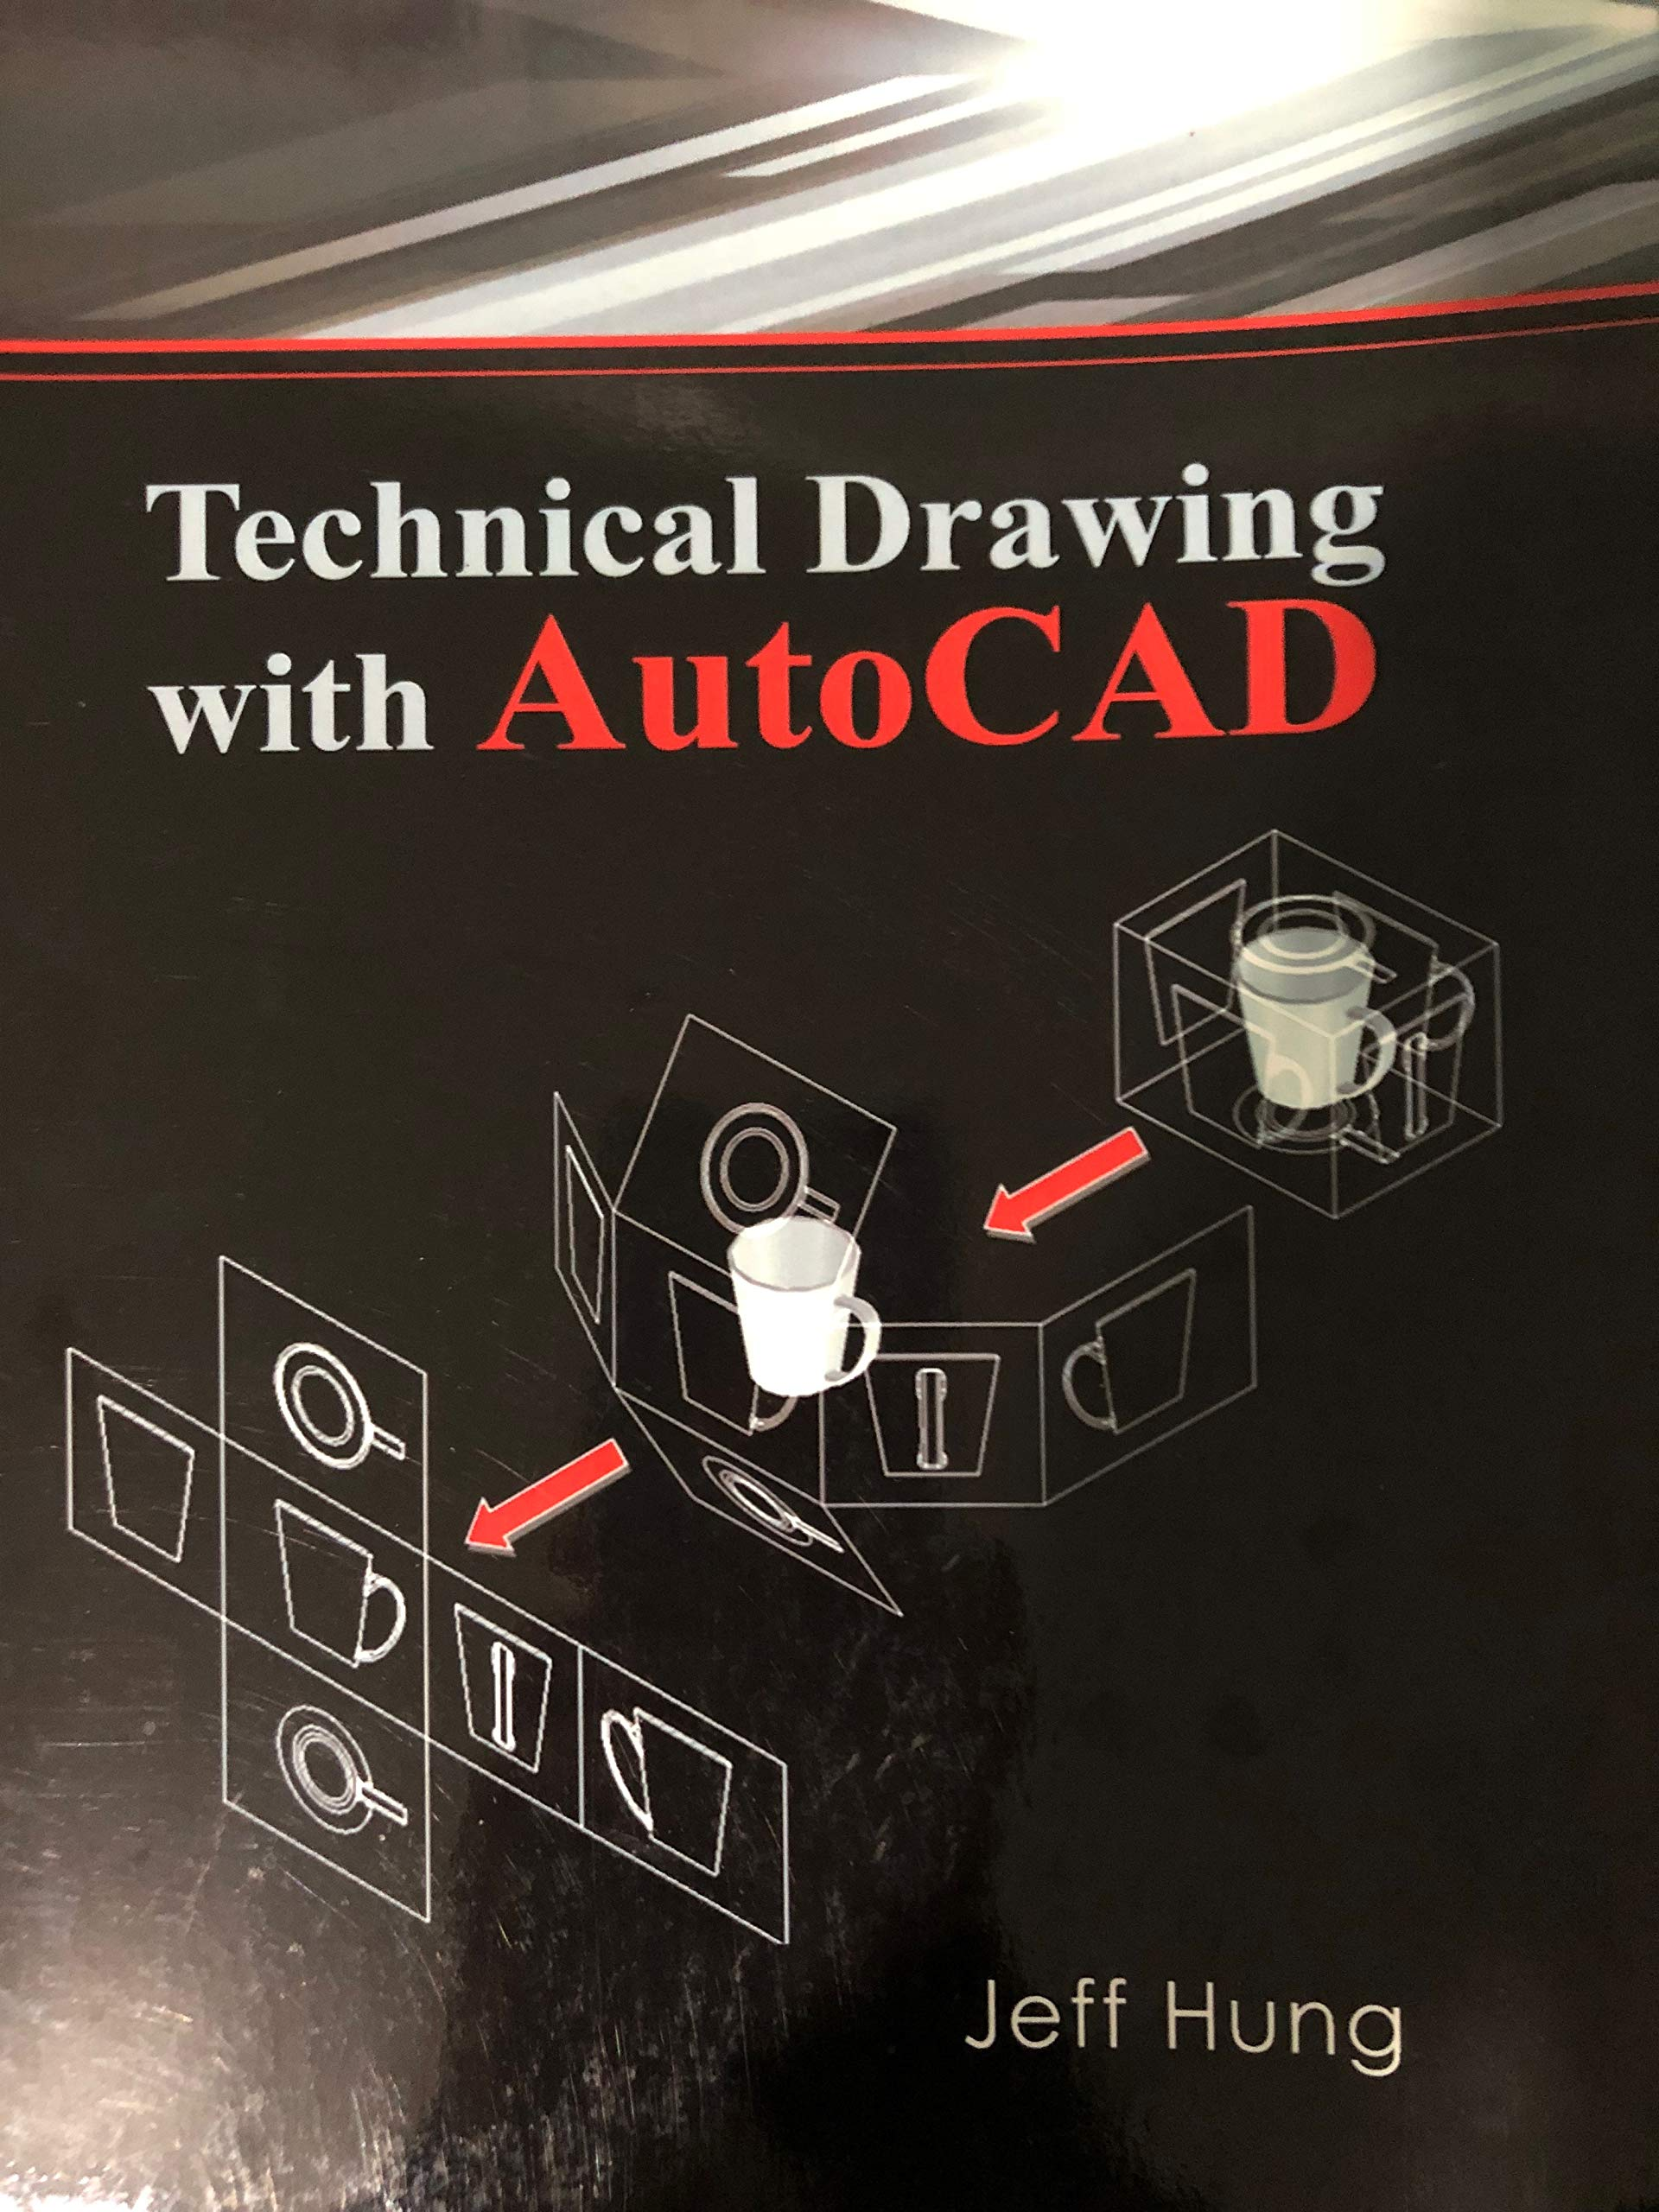 Technical Drawing with AutoCAD: Jeff Hung: 9781607974345